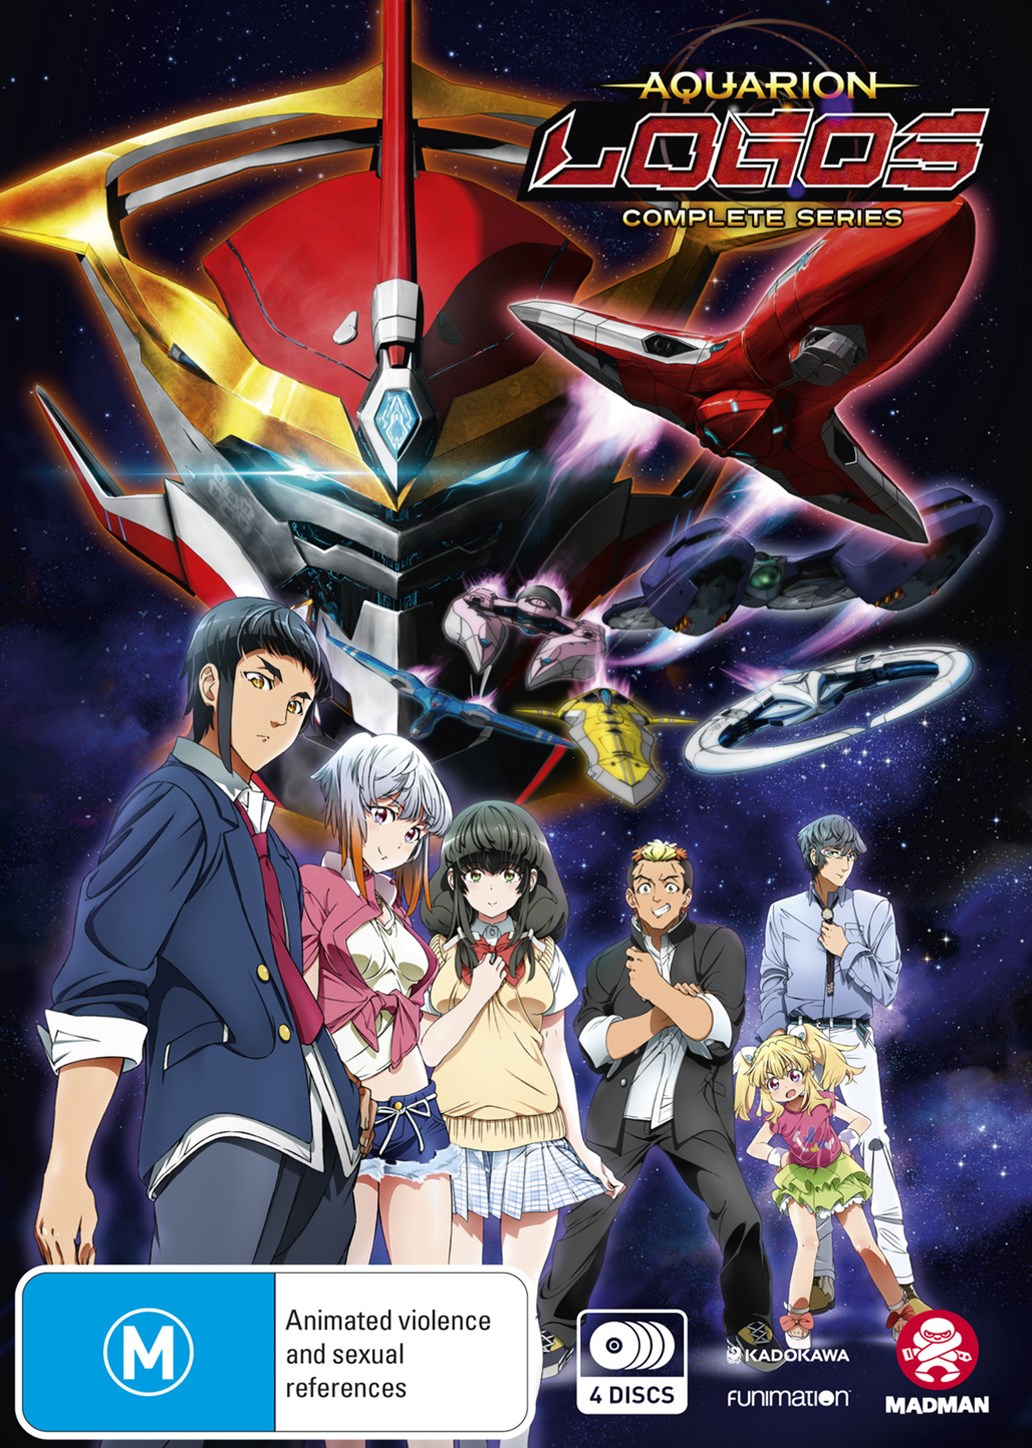 Aquarion Logos: Complete Series